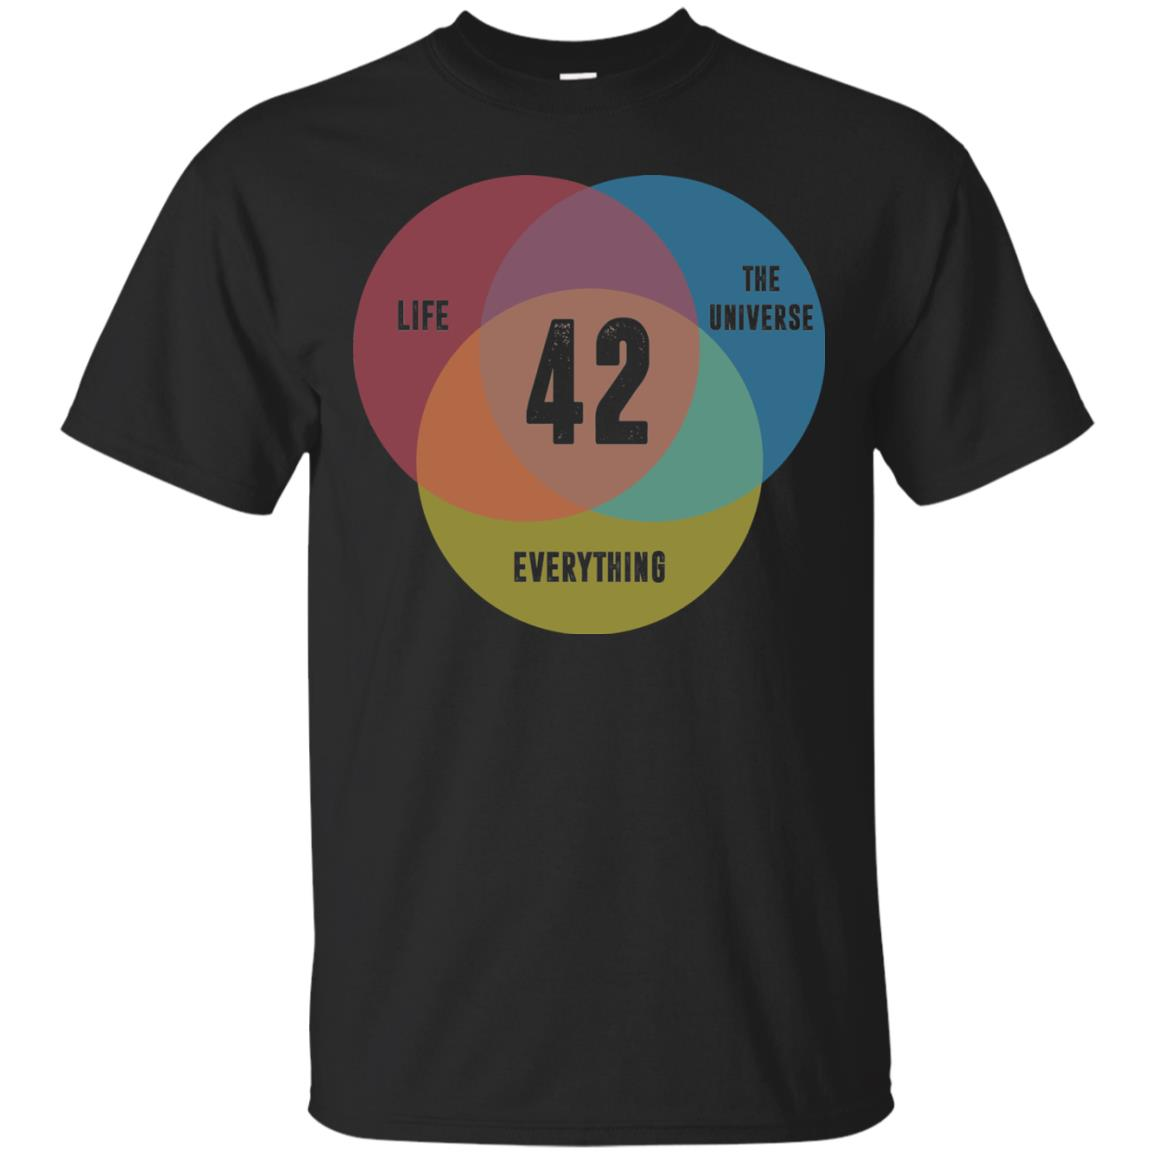 image 469 venn diagram 42 life, the universe & everything t shirt shirt diagram at gsmportal.co